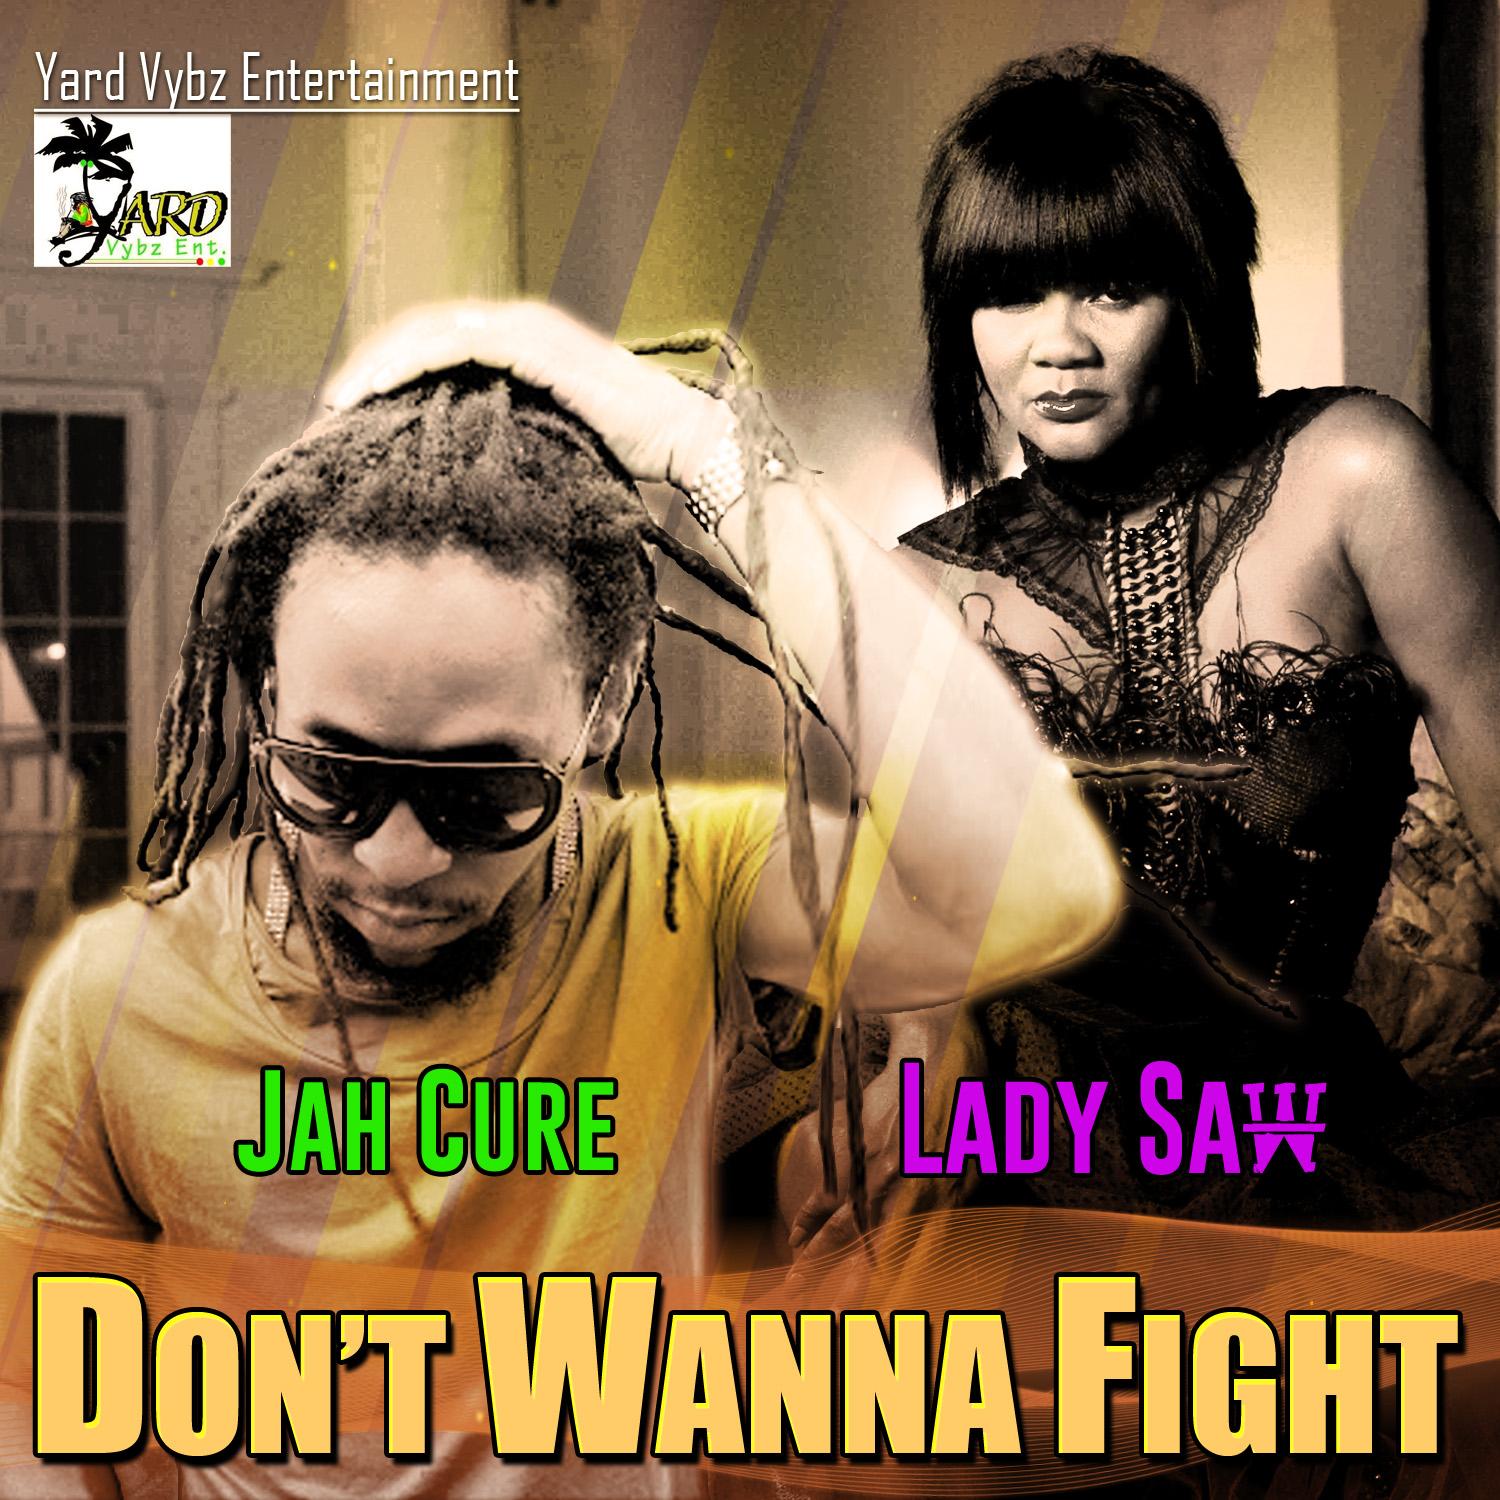 Jah-Cure-Lady-Saw-Dont-Wanna-Fight-Yard-Vybz-Entertainment-artwork